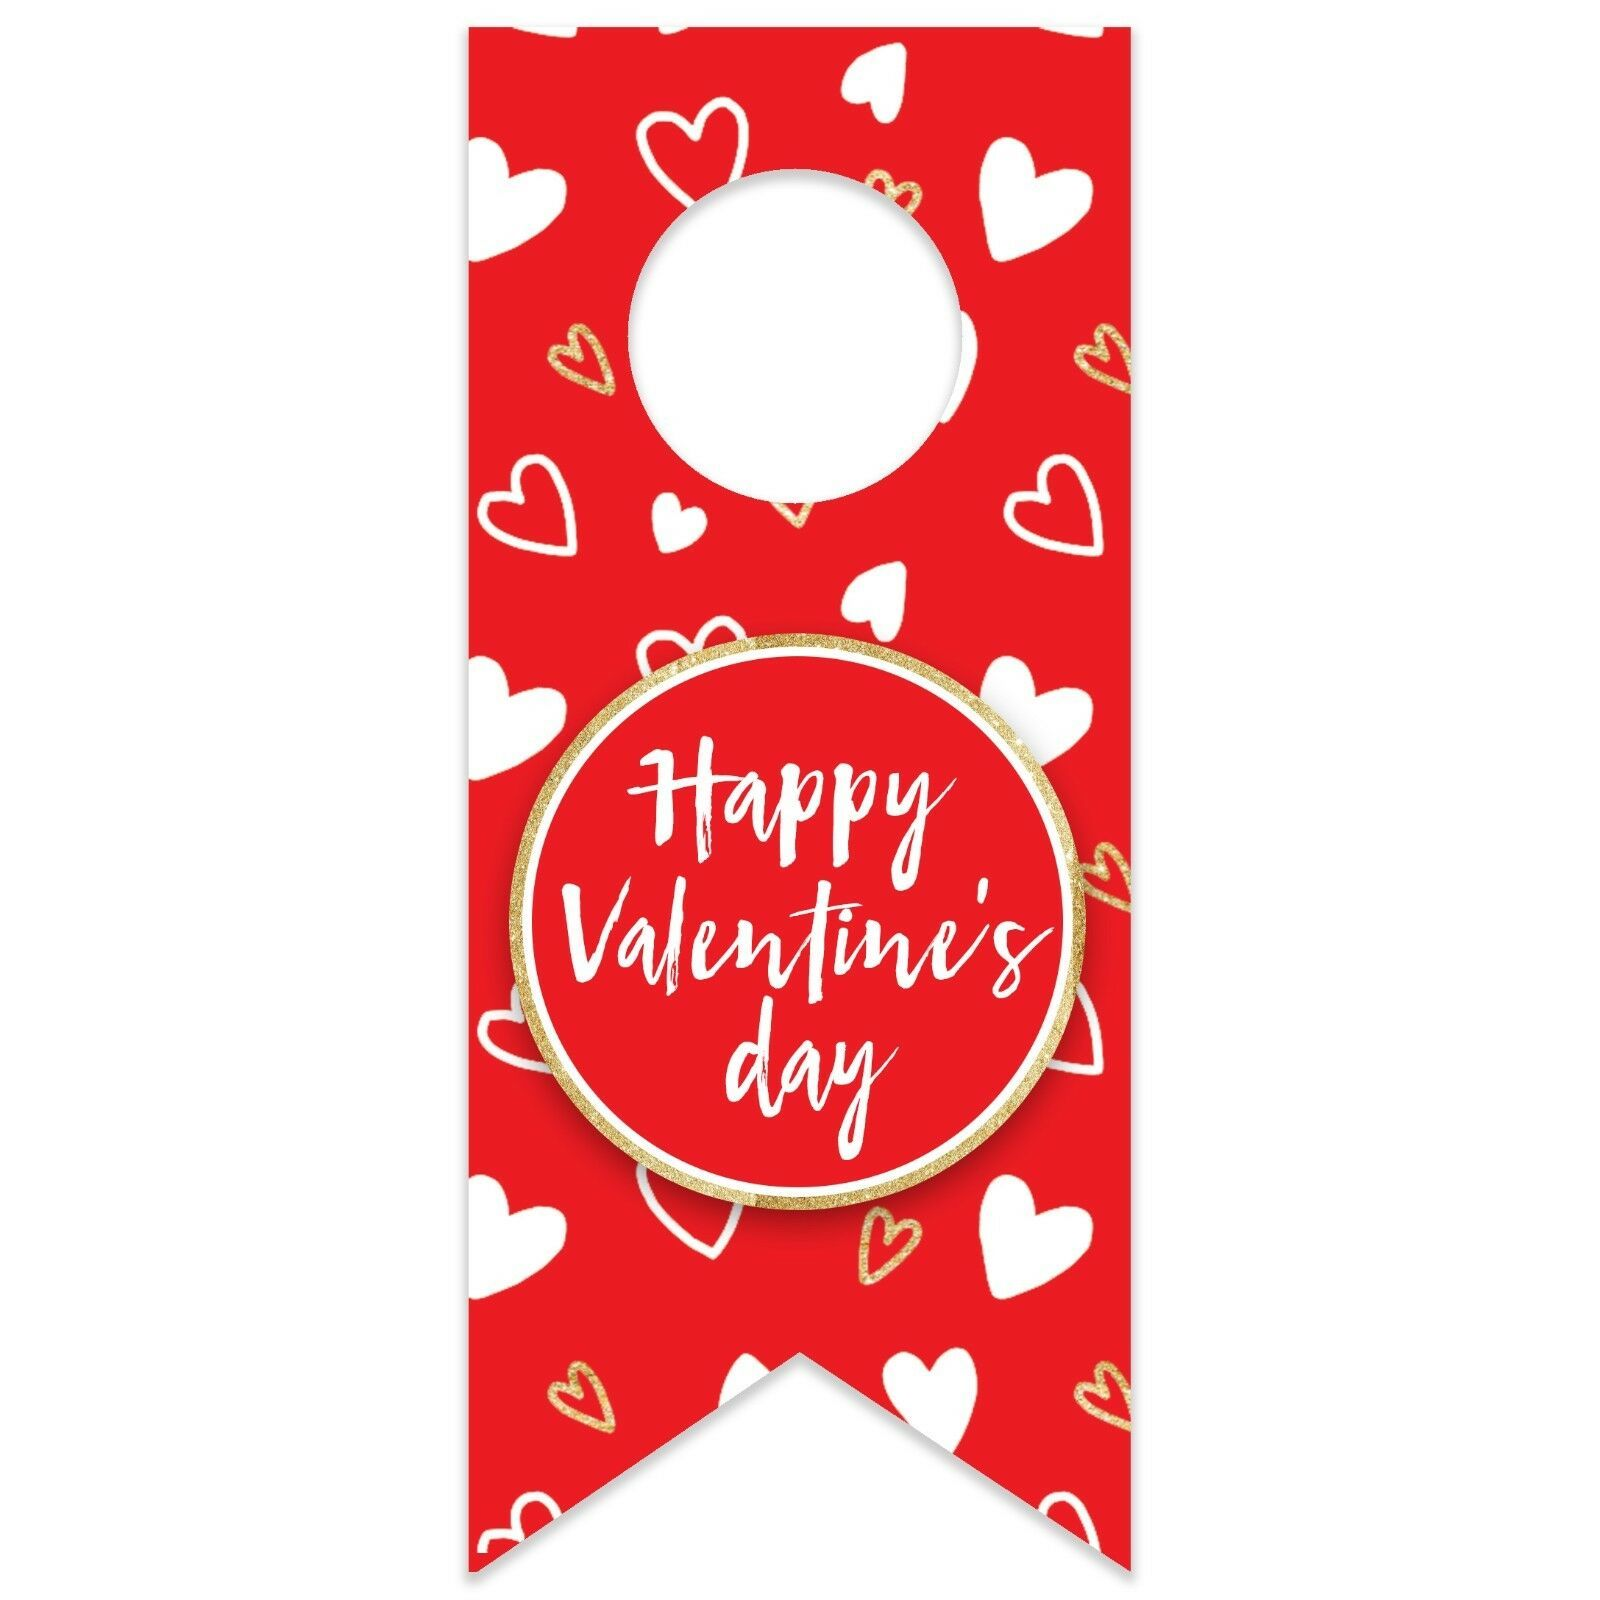 Valentine's Day Doodle Hearts Water Bottle Hang Tag